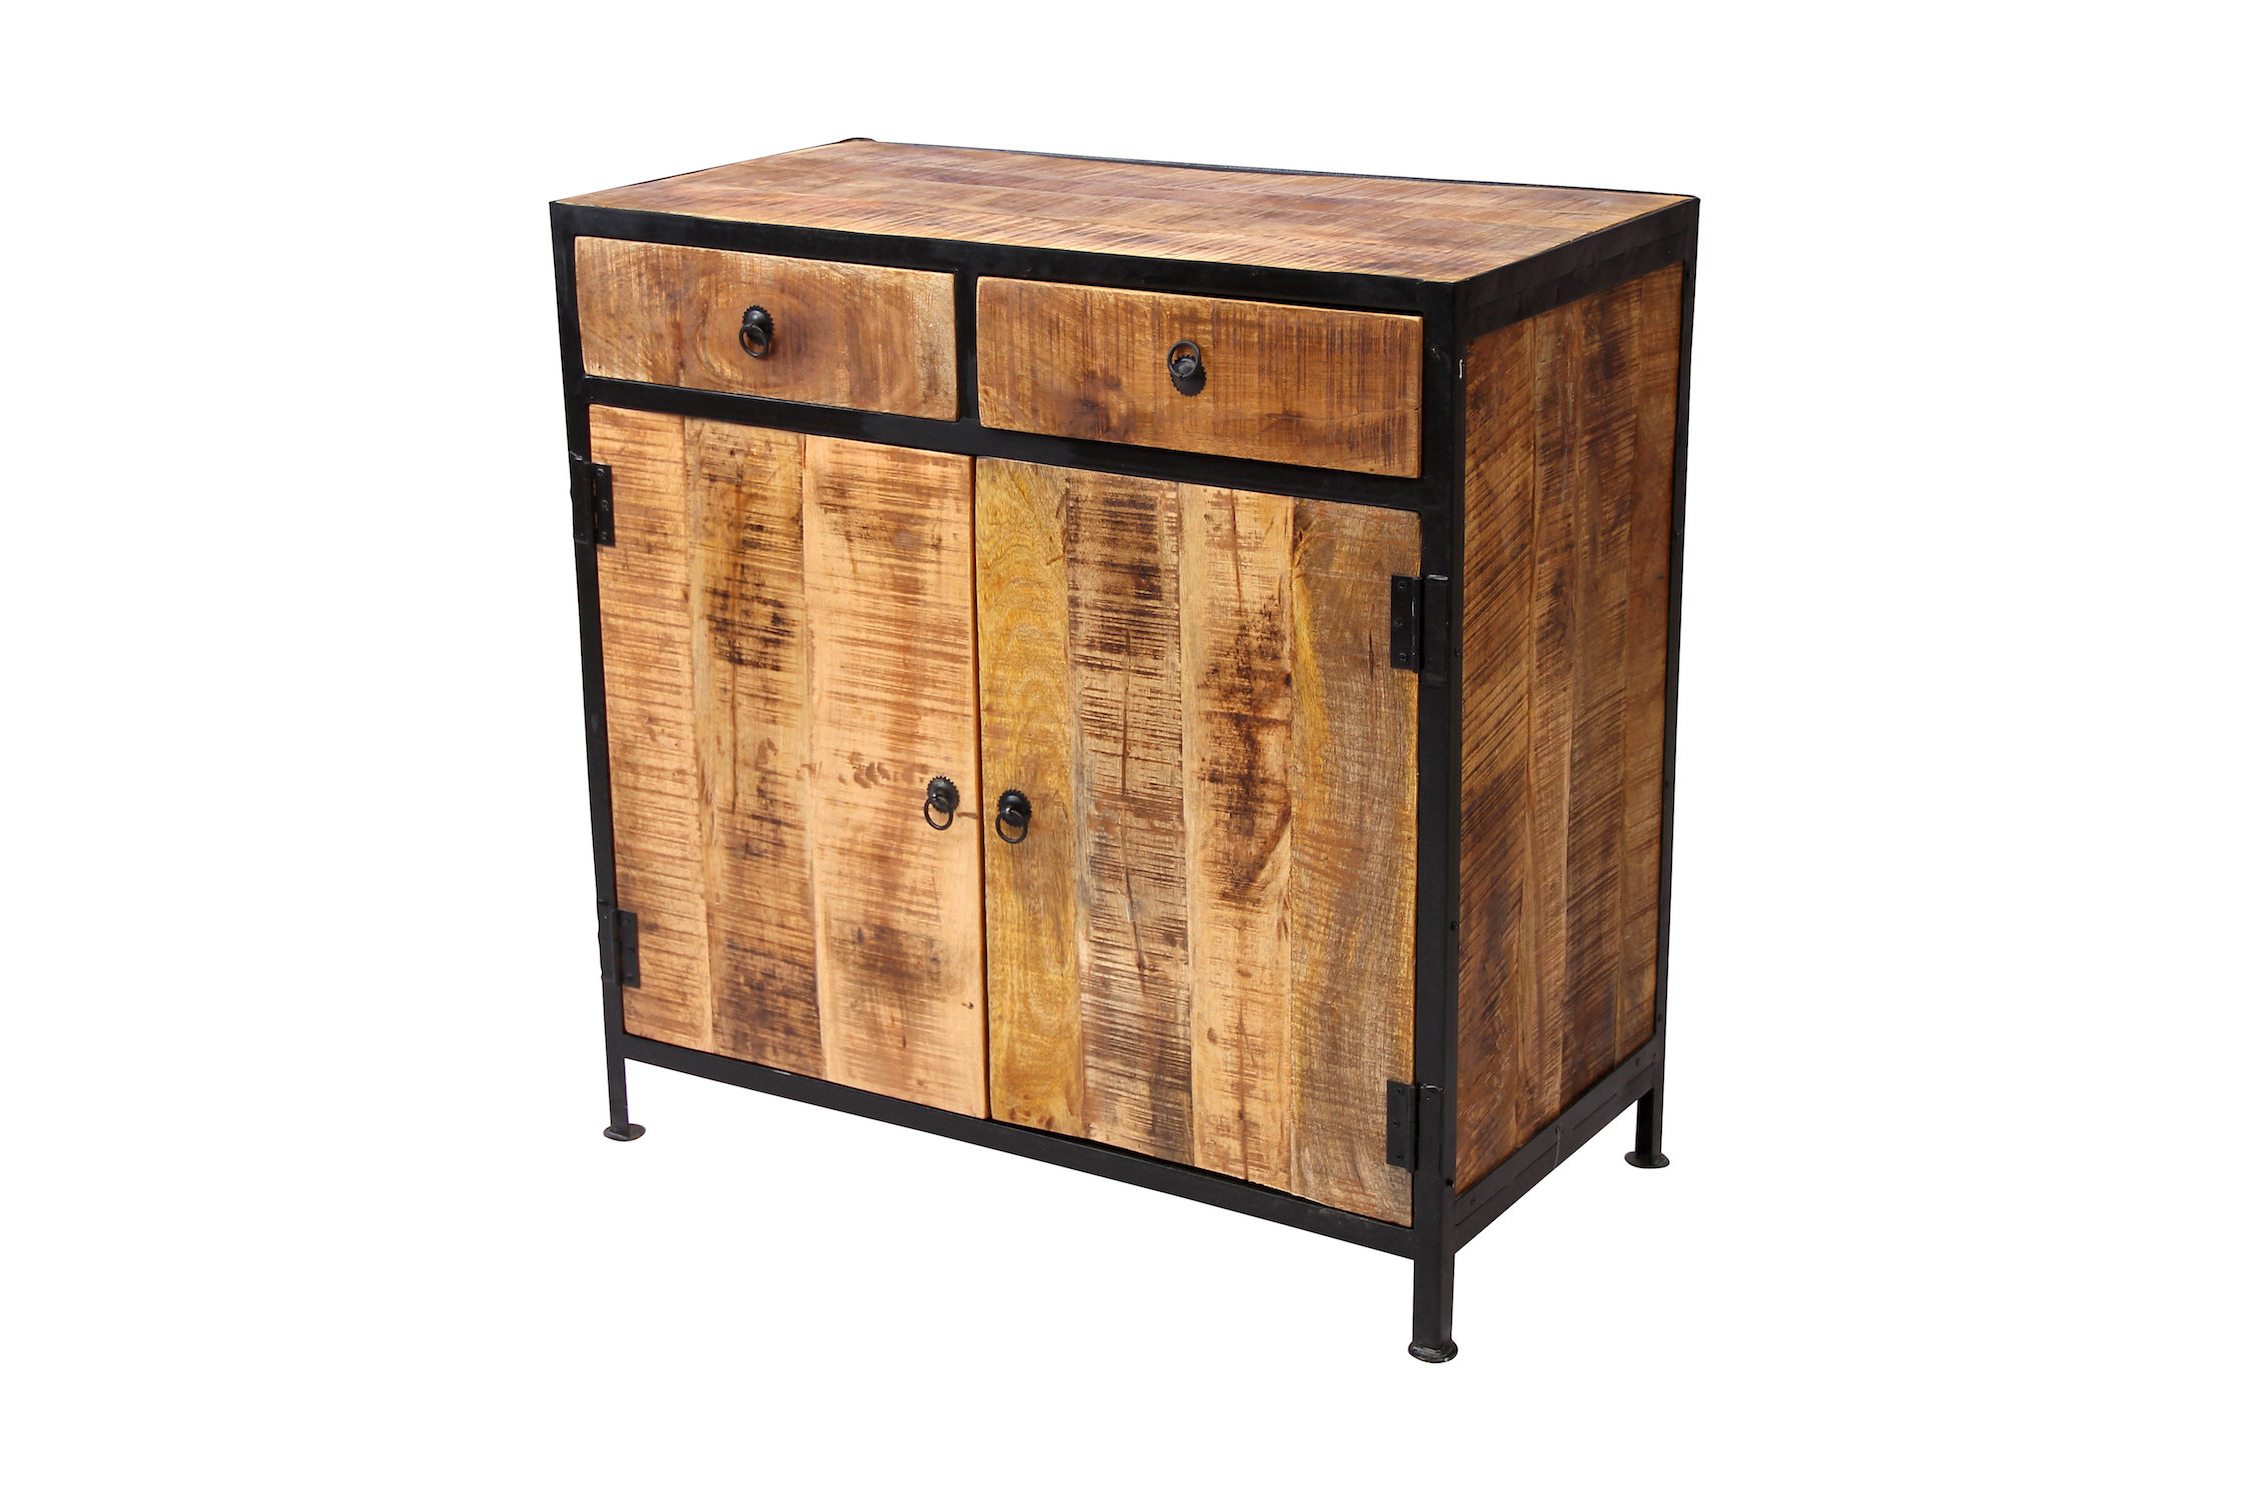 Iron Pine Sideboards With Recent Millwood Pines Dante Industrial Reclaimed Wood And Iron 2 Drawer (View 18 of 20)